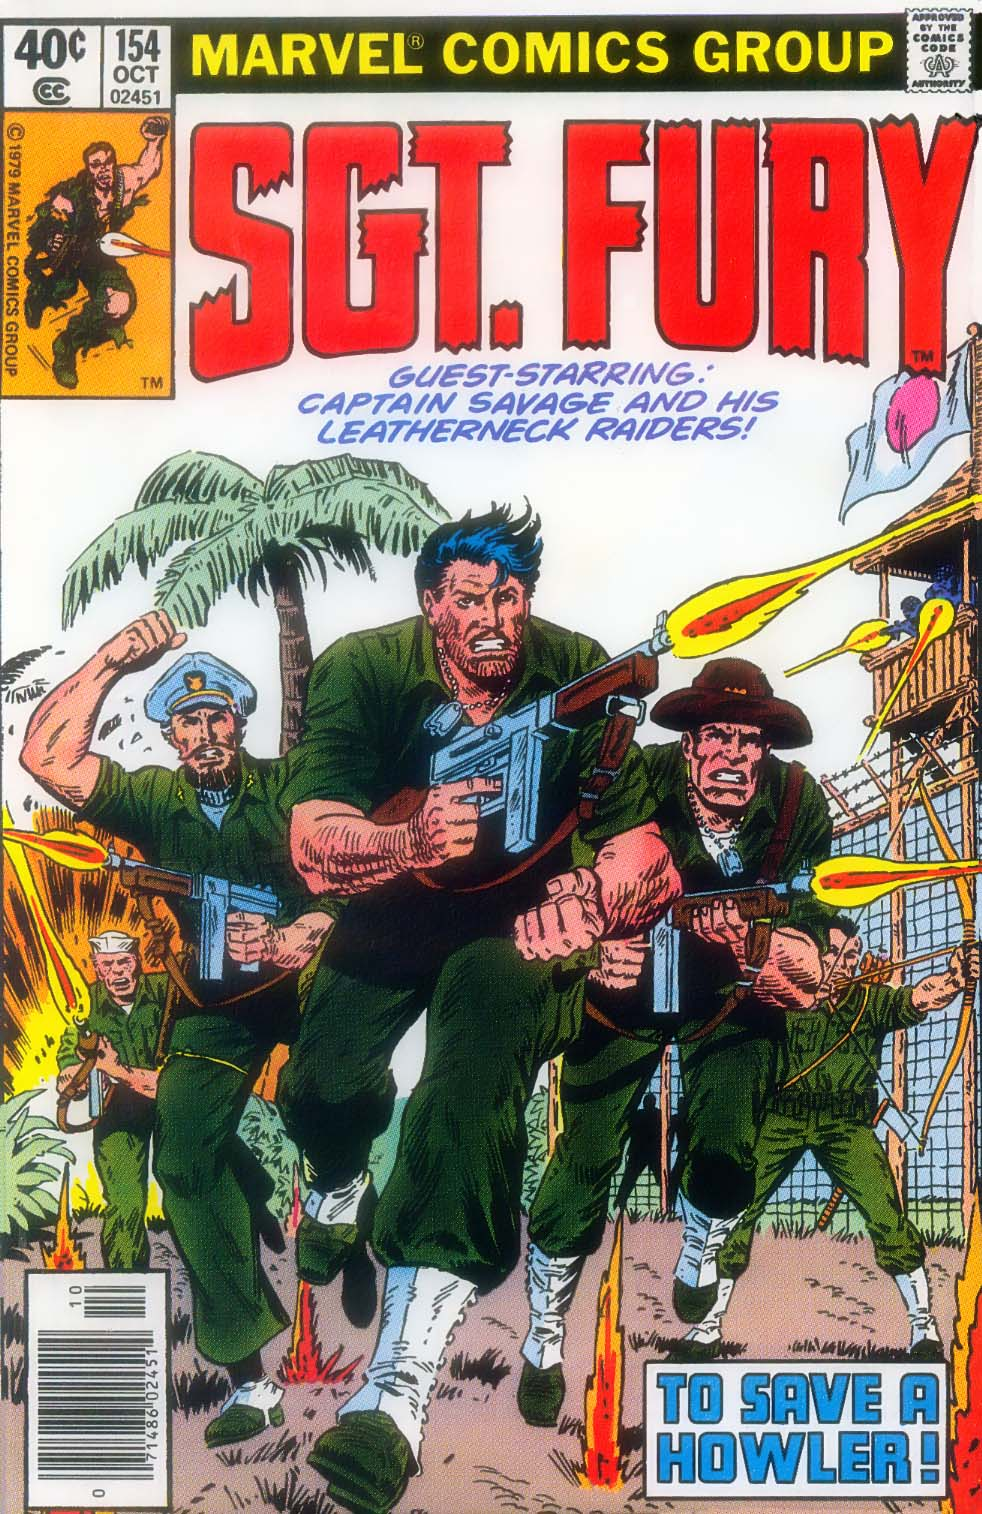 Read online Sgt. Fury comic -  Issue #154 - 1